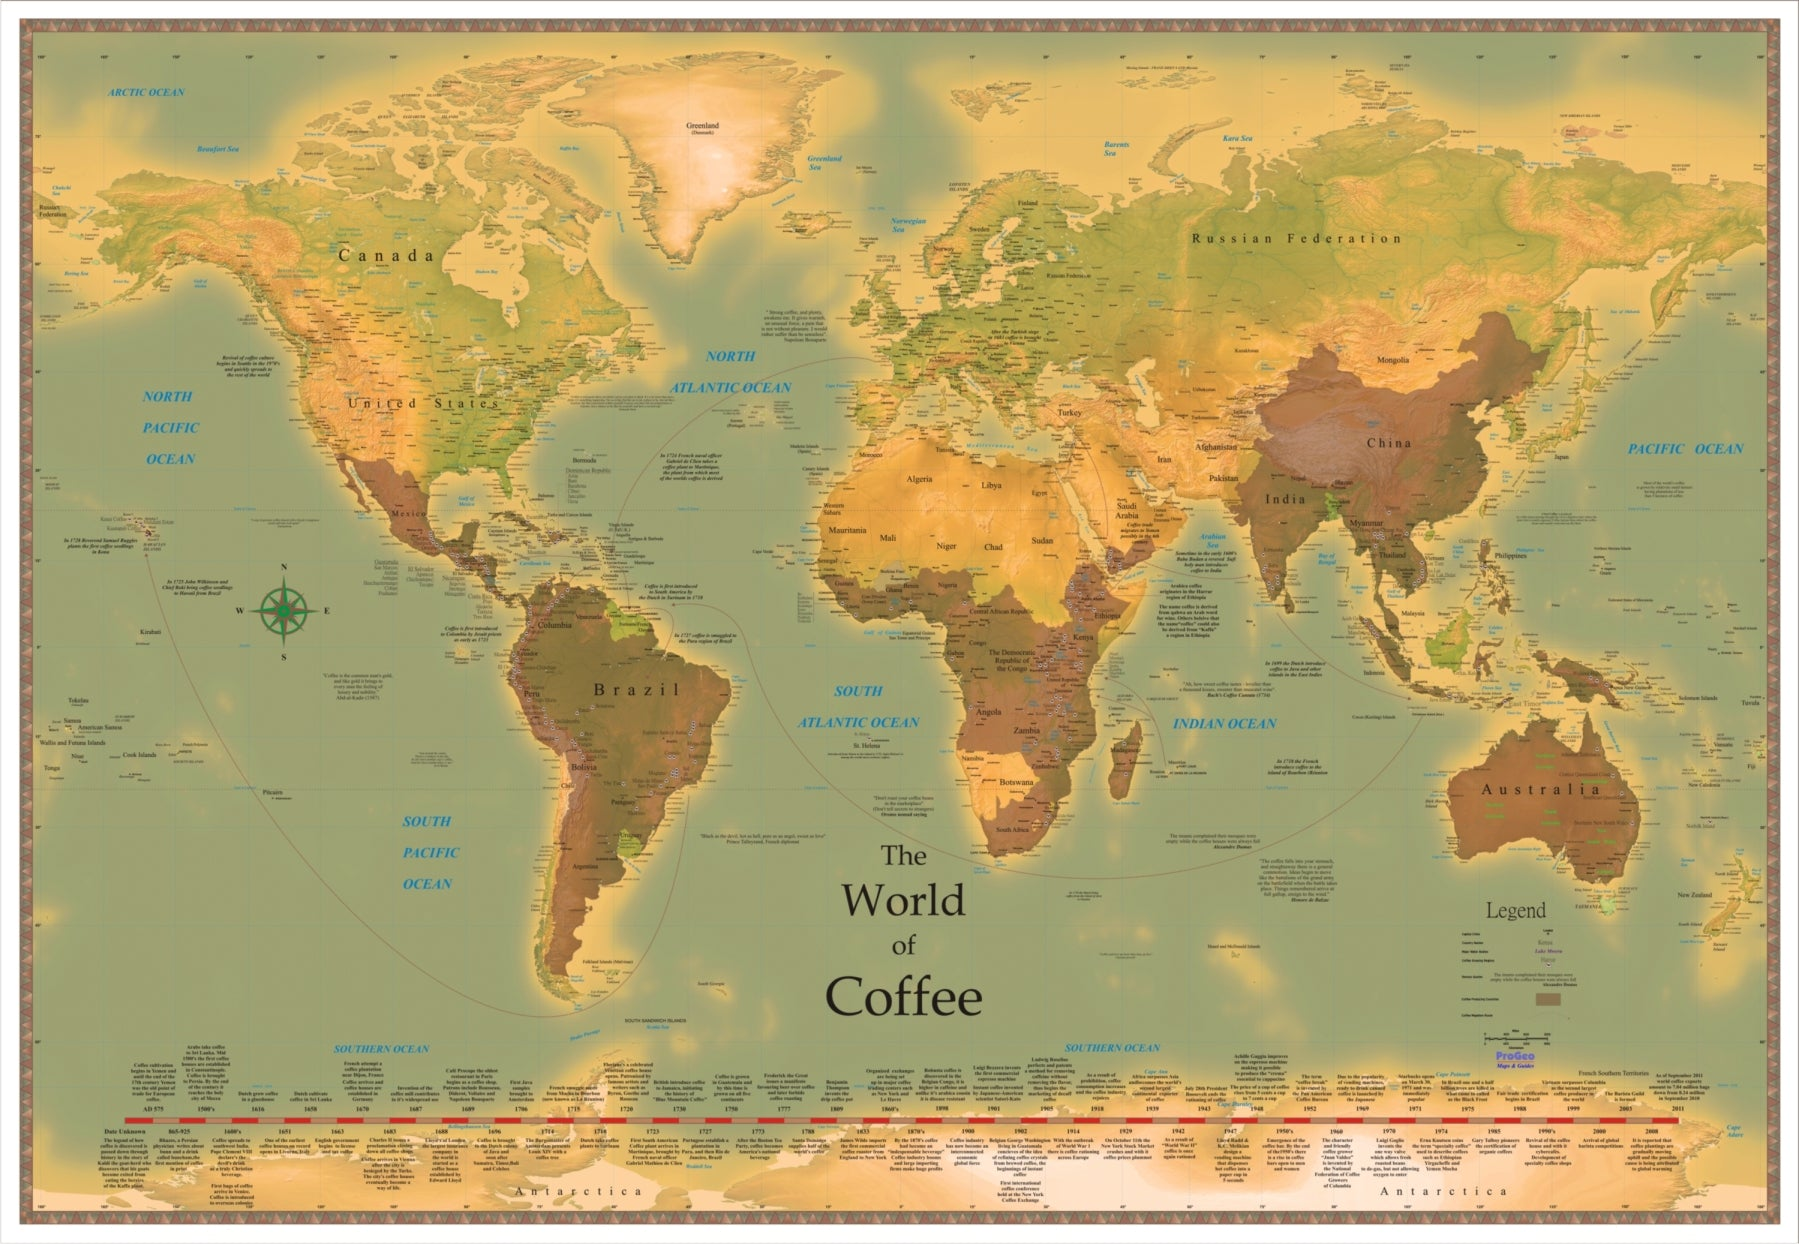 World Coffee Map 2018 Edition Exquisitely Detailed LARGE 48 x 72